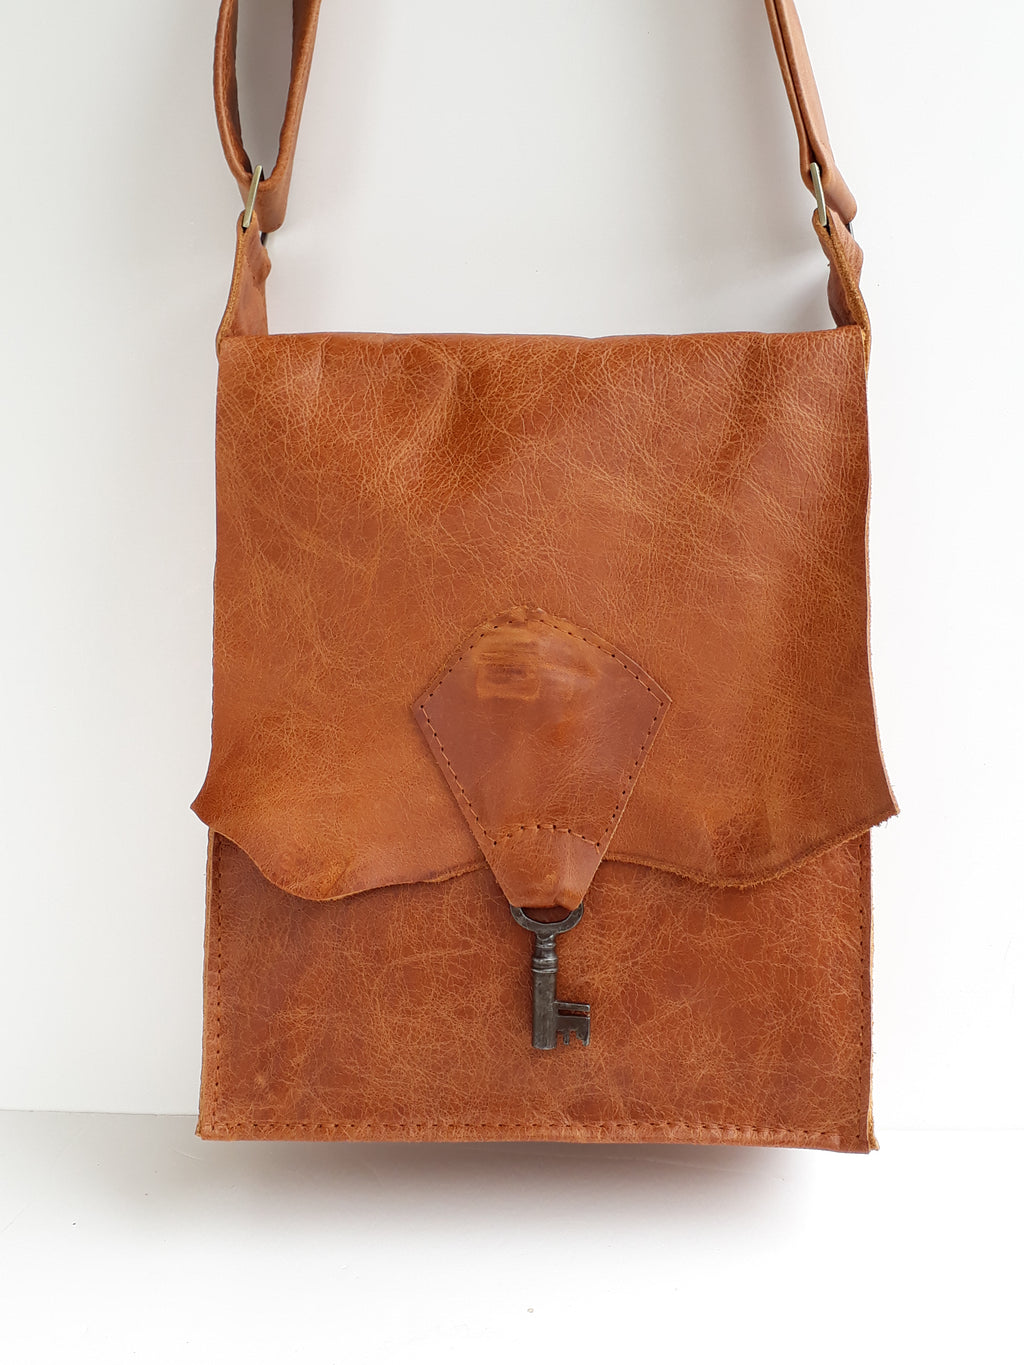 Raw Edge Leather Bag with Vintage Key Detail - Tan - Coterie Leather Bags